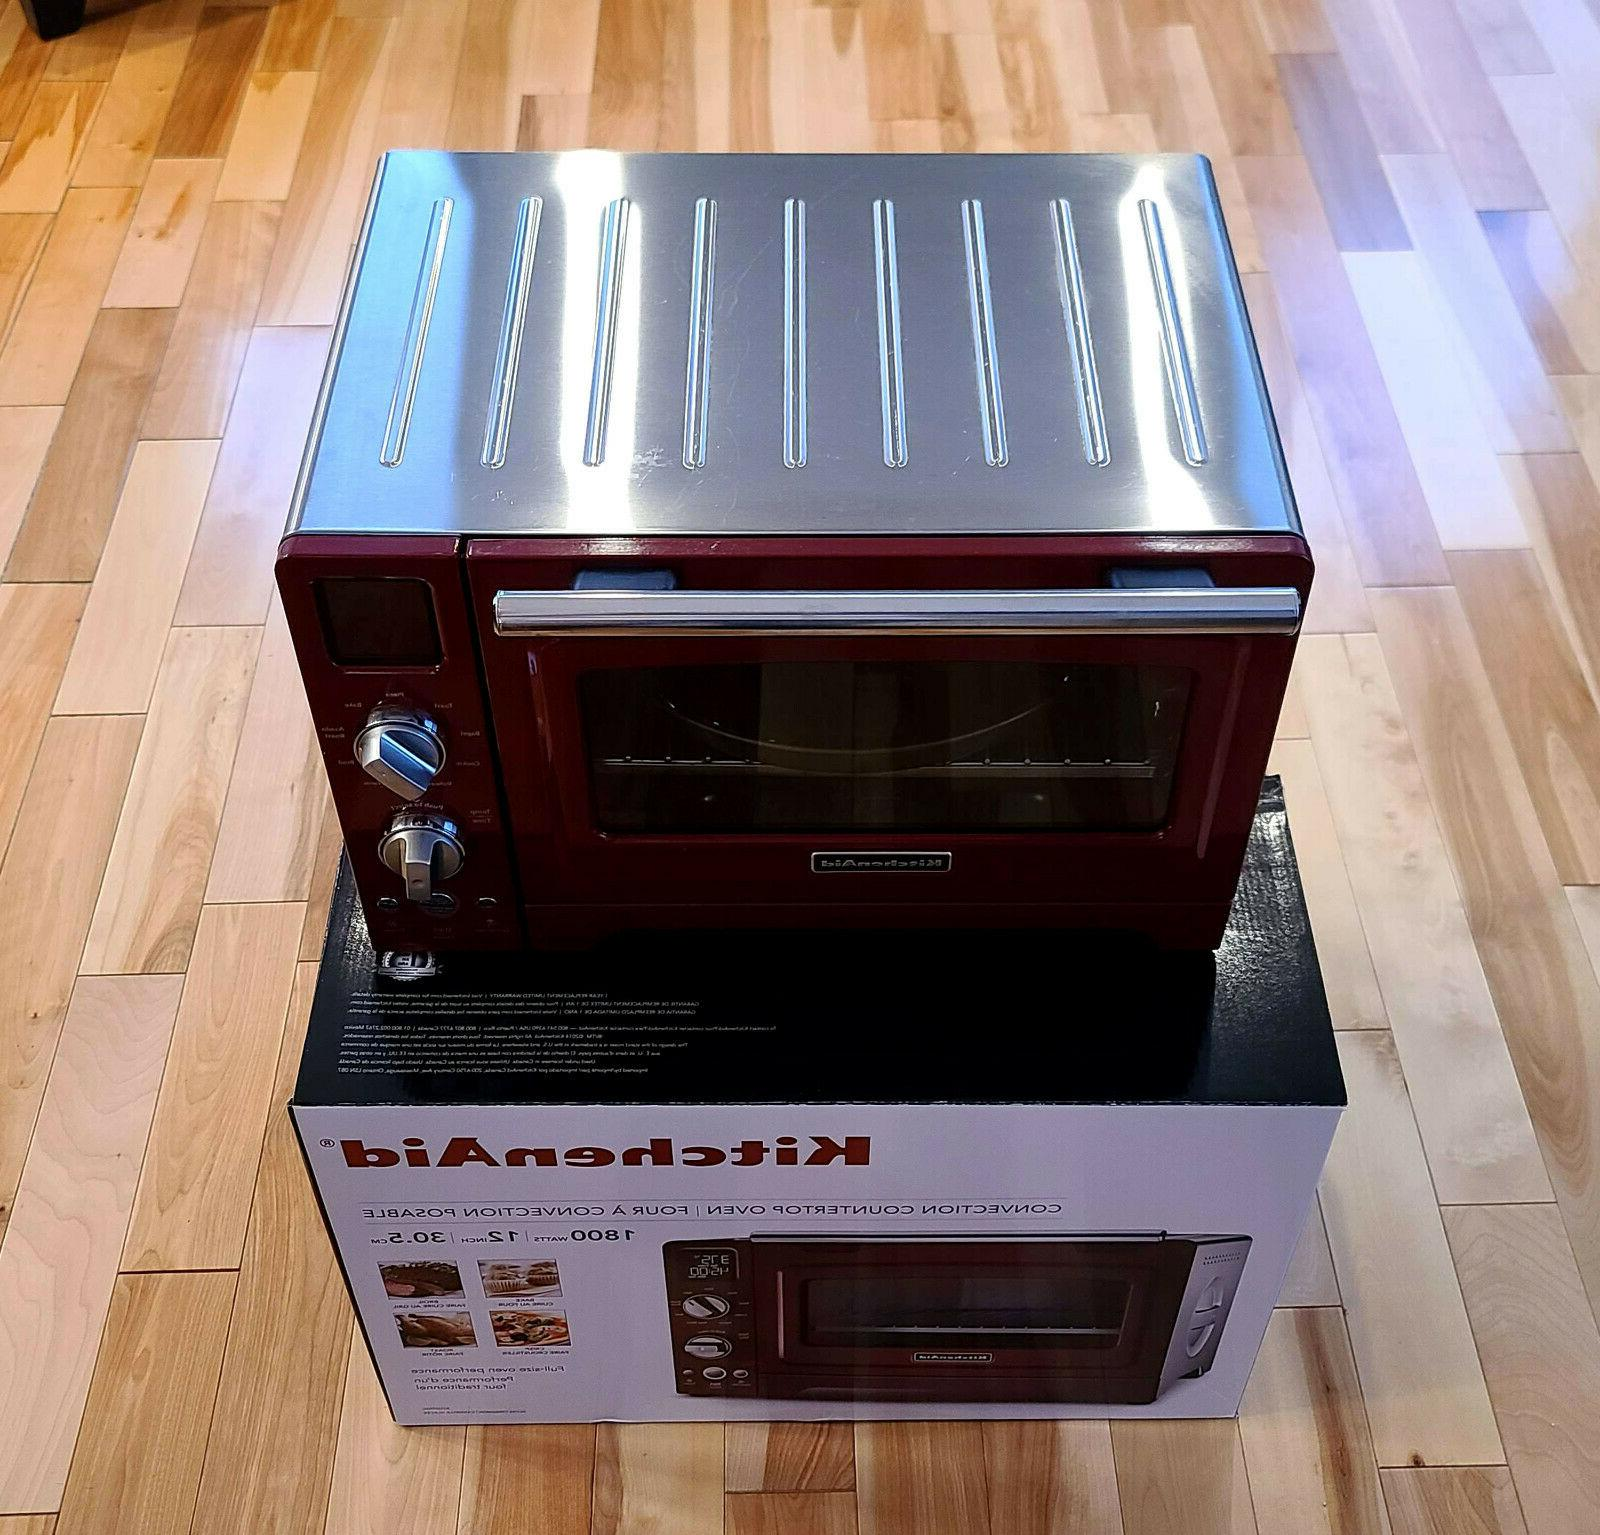 KitchenAid Convection Oven w/9 Pre-Programmed Settings